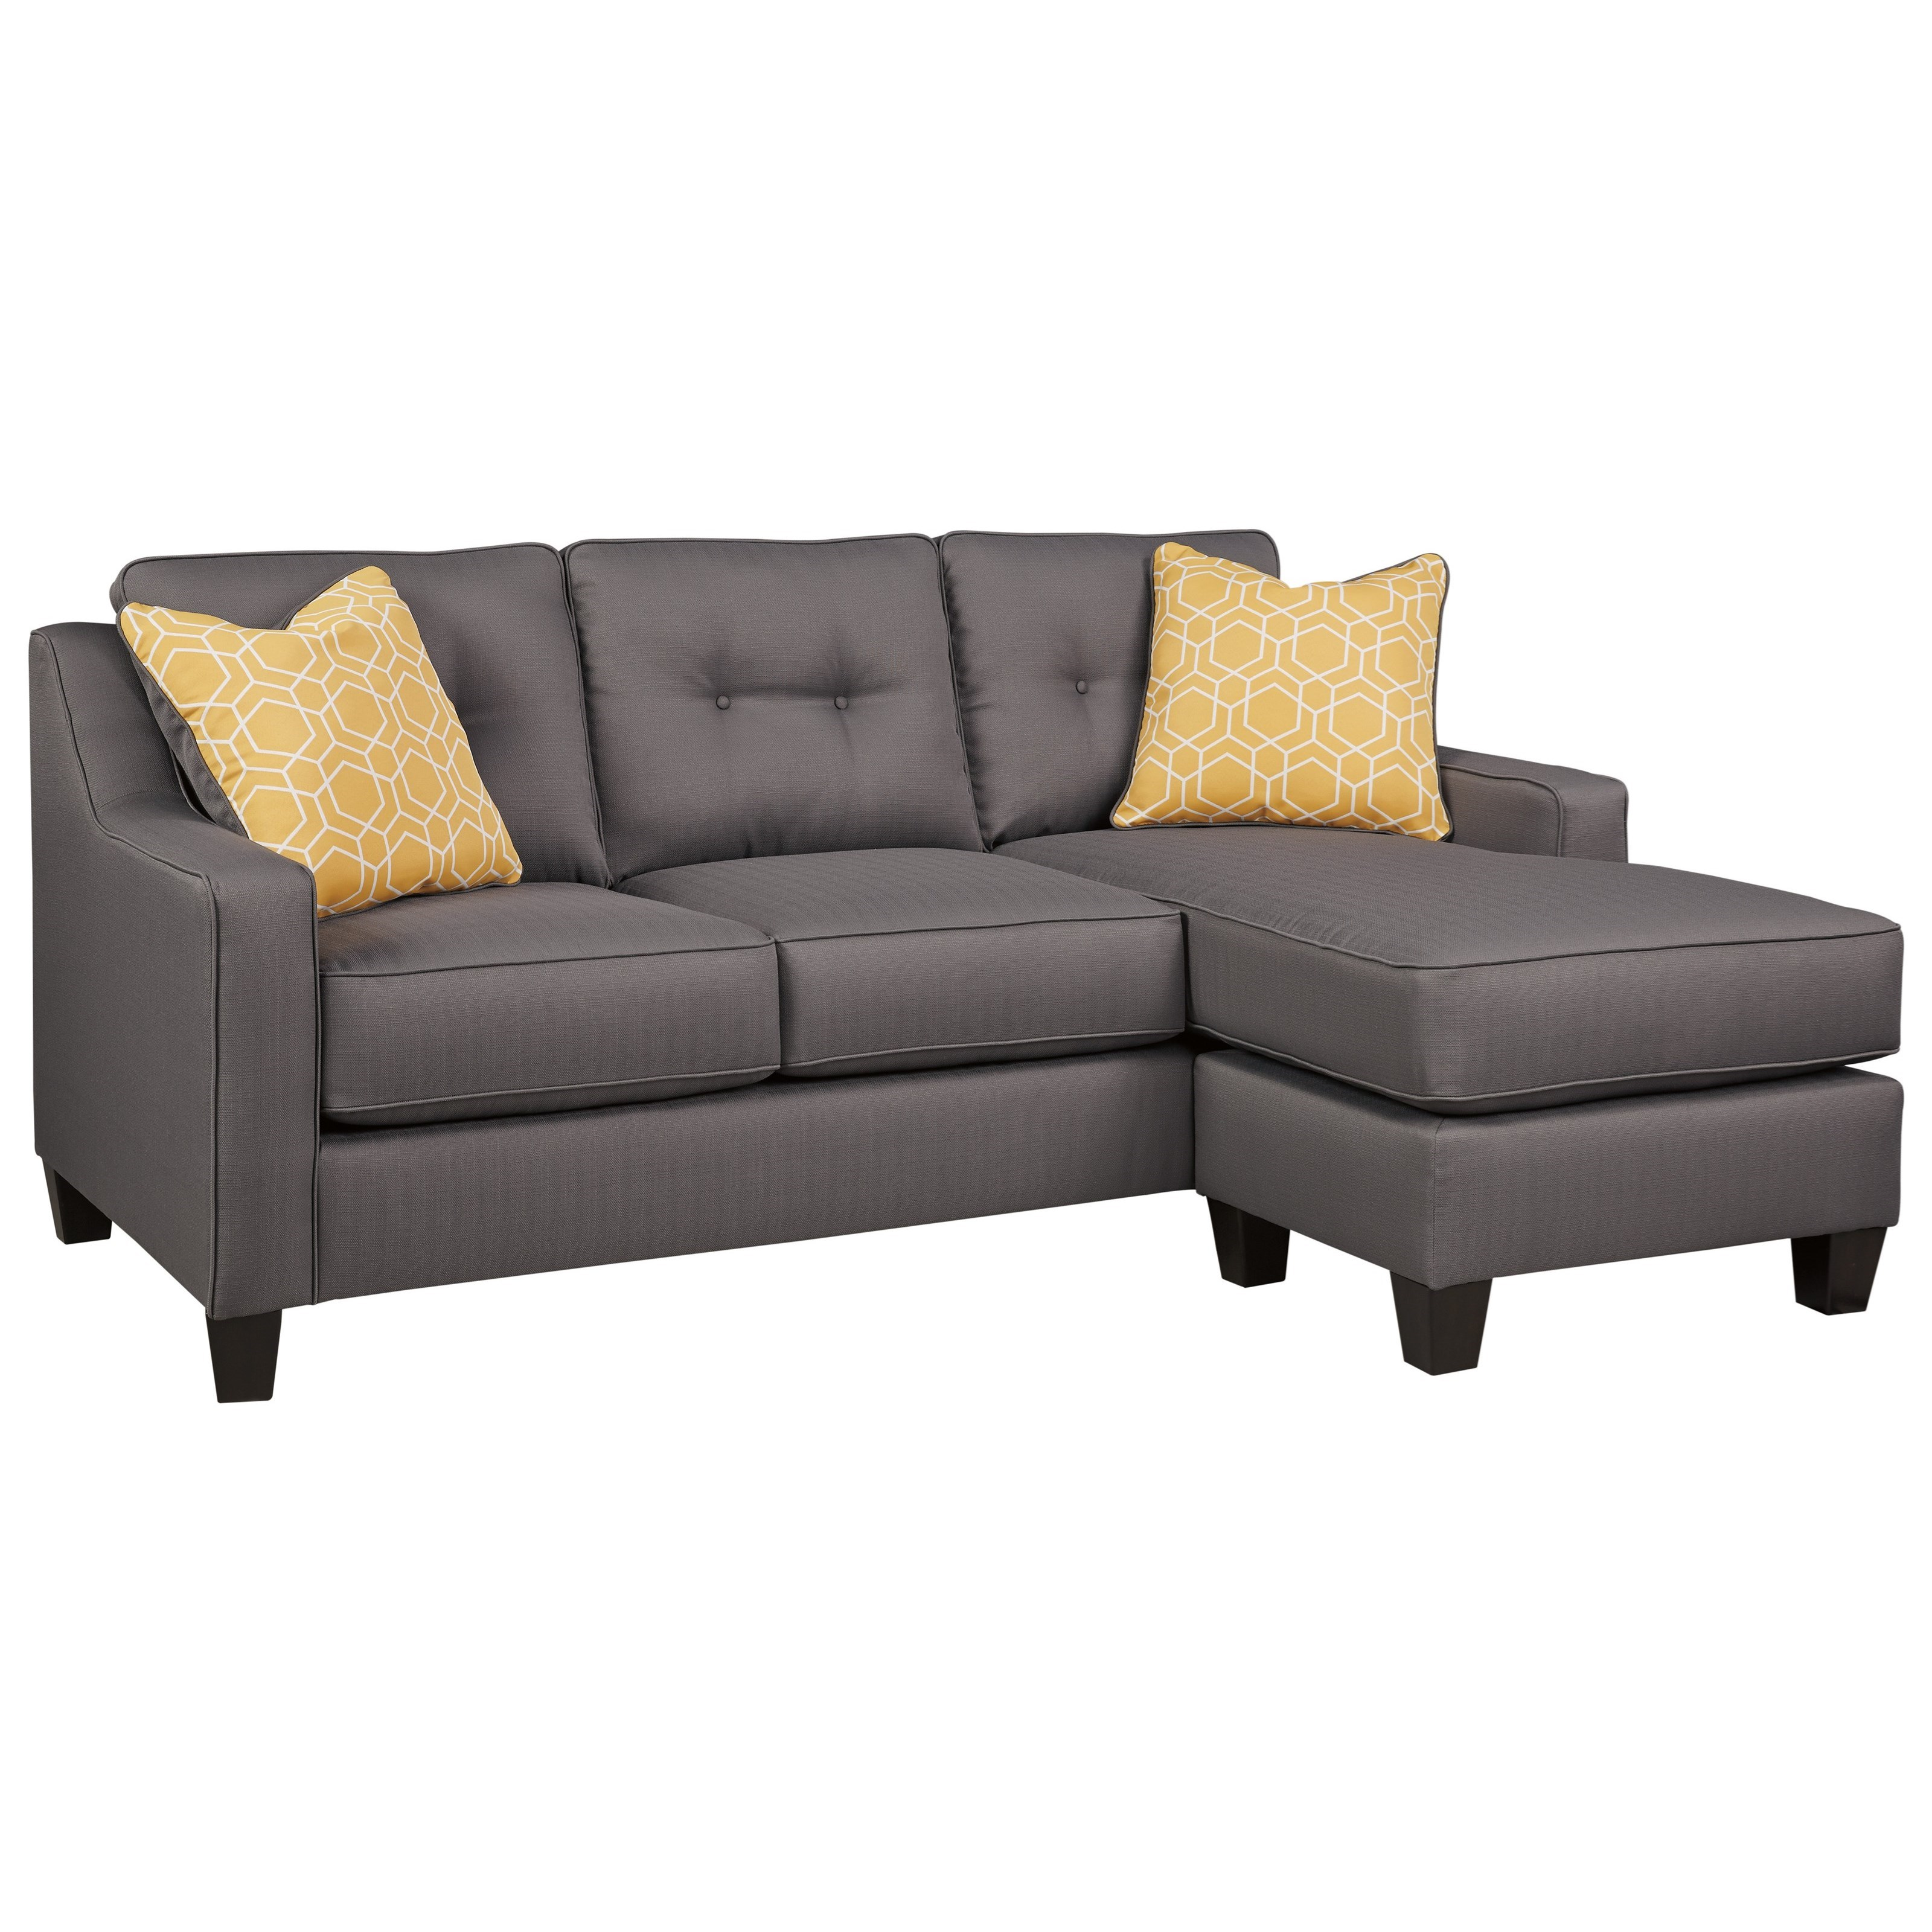 Sofa Sleeper Chaise: Benchcraft Aldie Nuvella 6870268 Queen Sofa Chaise Sleeper